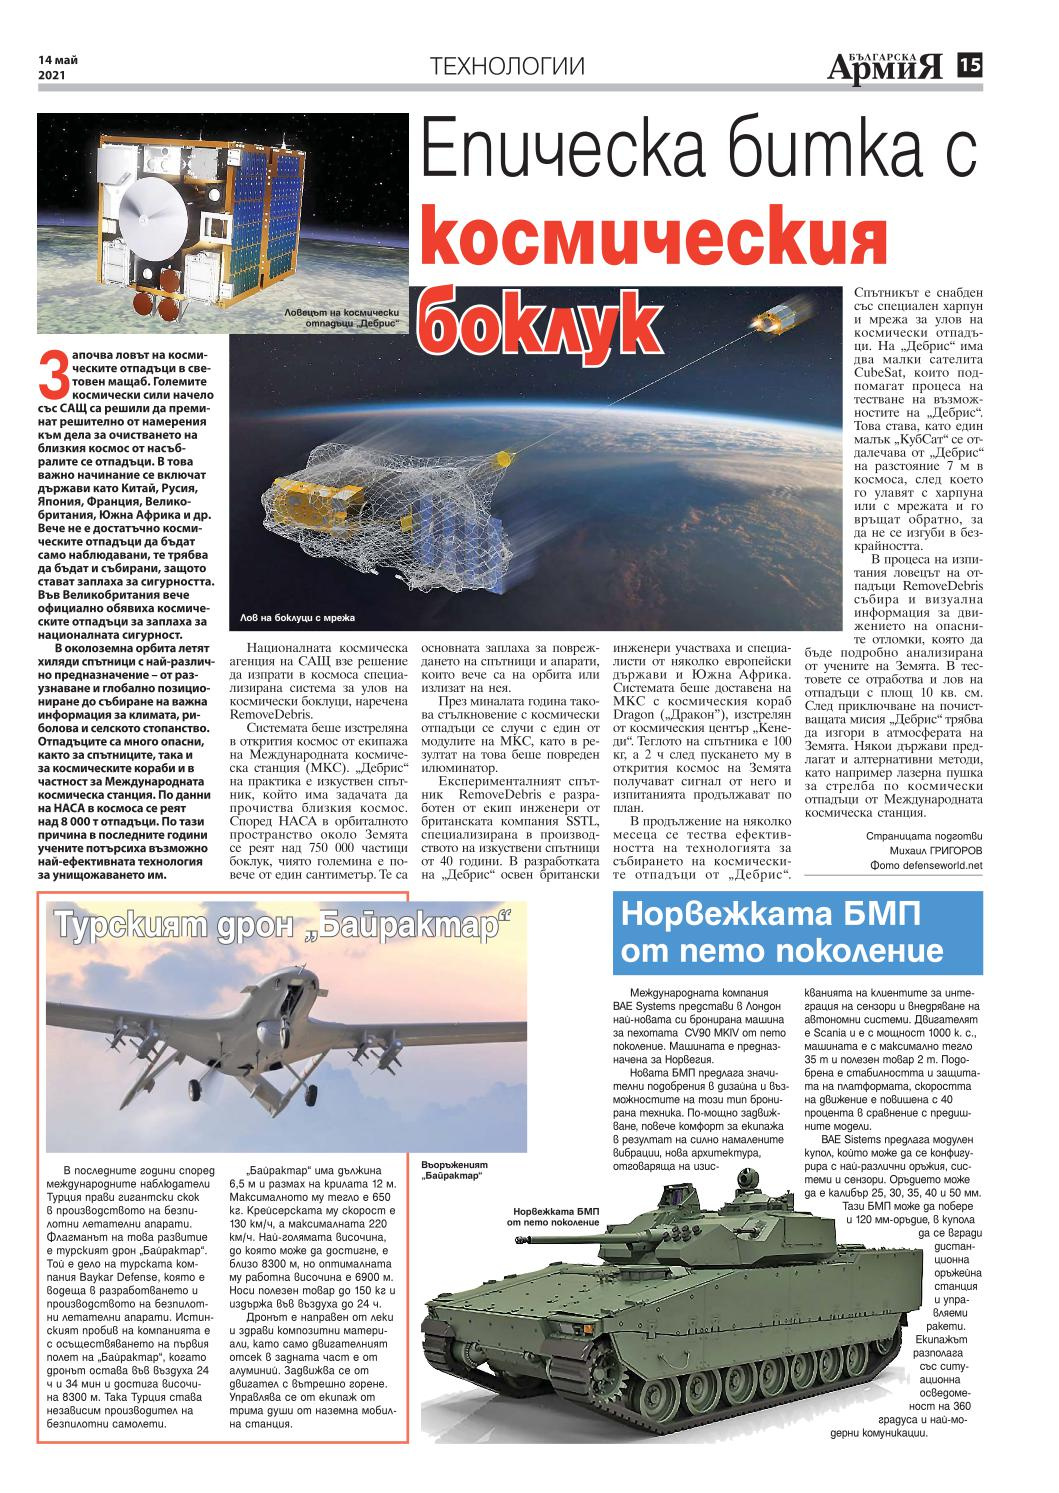 https://armymedia.bg/wp-content/uploads/2021/05/15.page1_-1.jpg